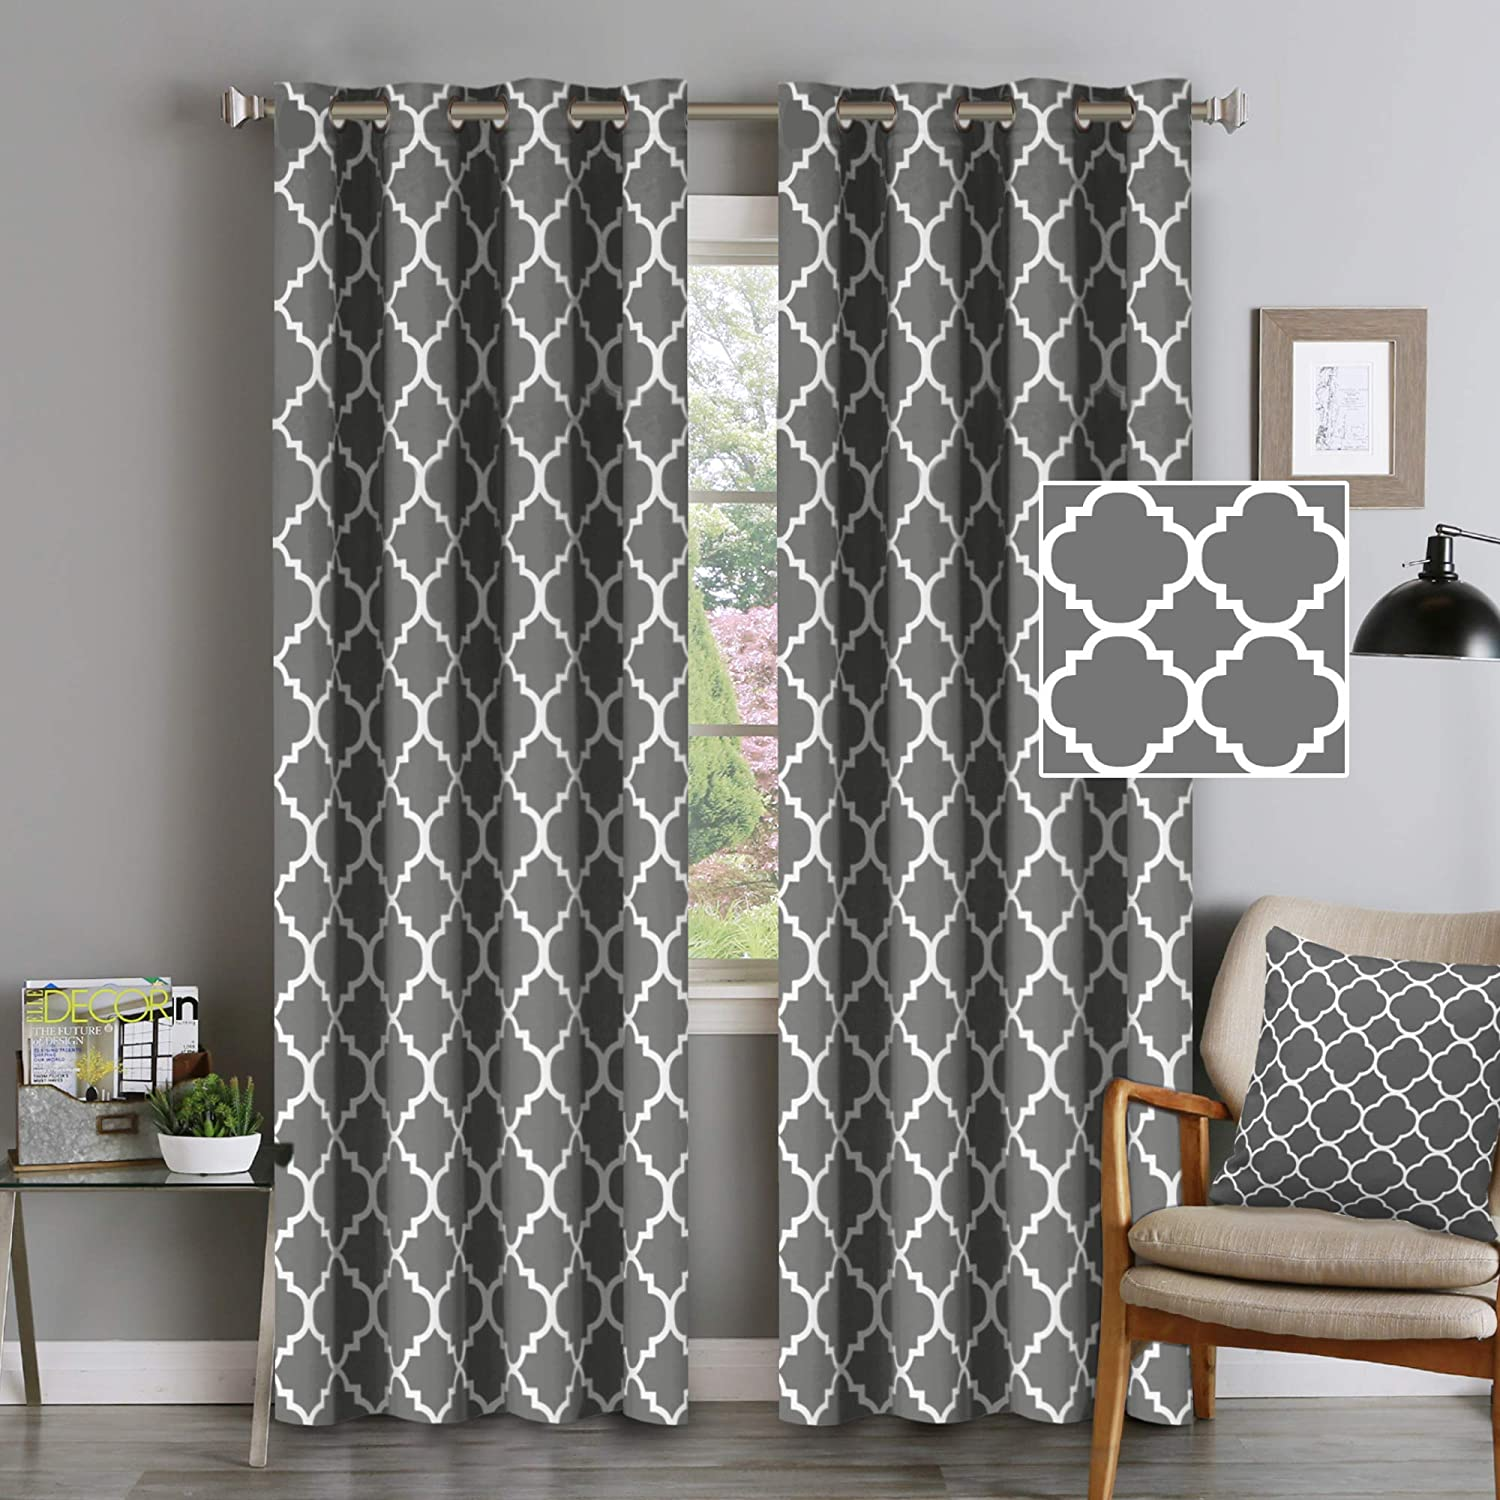 Blackout Curtains Energy Smart & Noise Blocking Out Blackout Drapes for  Dining Room Window Kids Curtains 96 inches Long for Kids Bedroom, Moroccan  ...